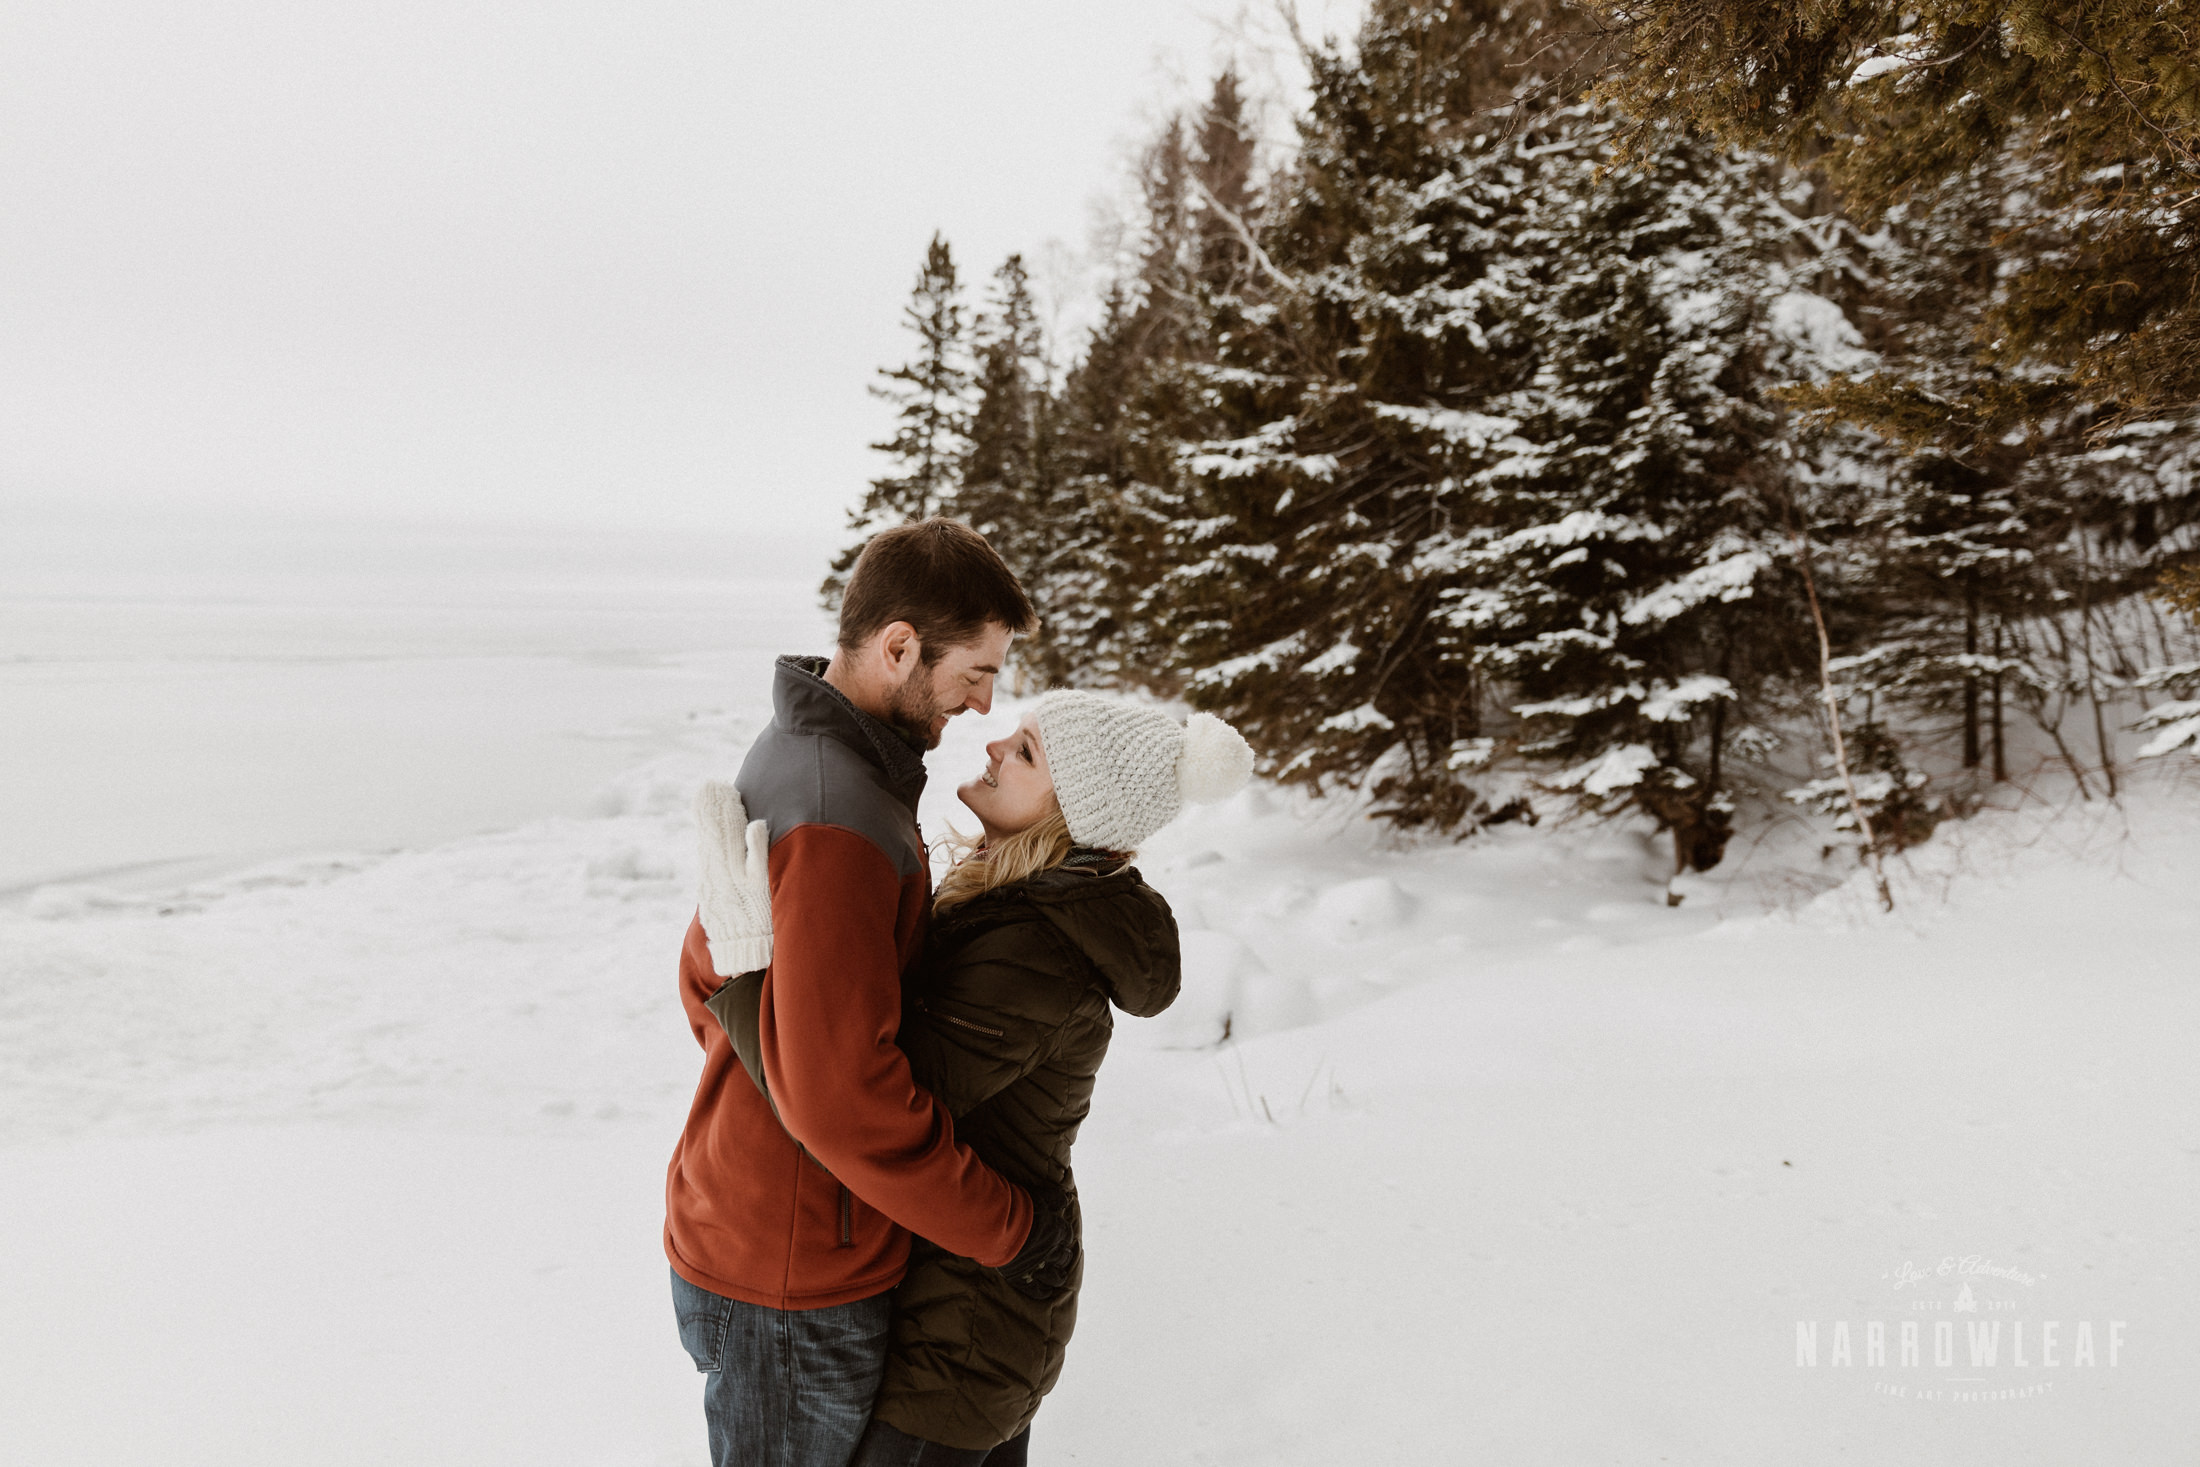 North-Shore-Minnesota-winter-Engagement-photos-Narrowleaf-Adventure-Photography-8748.jpg